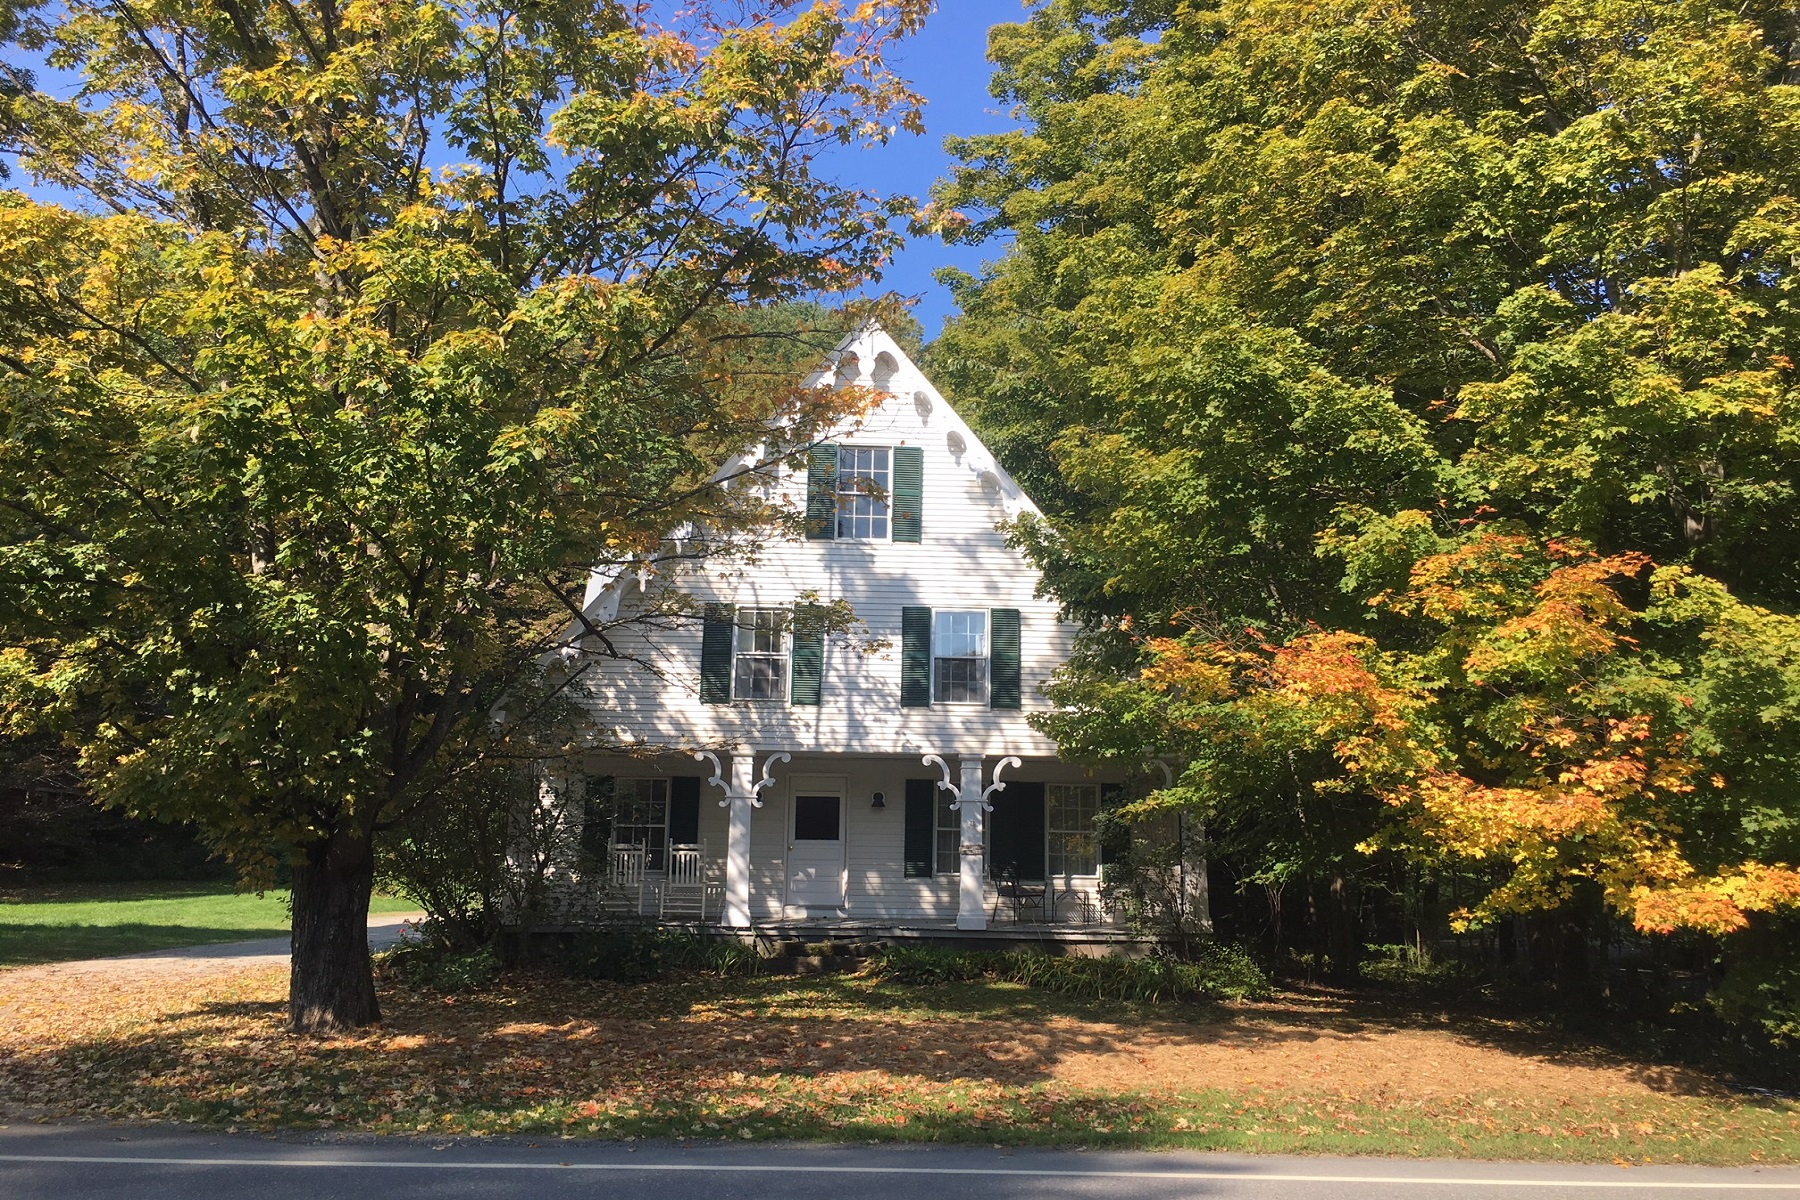 Single Family Home for Sale at Restored 1854 Greek Revival 4946 South Road South Woodstock, Vermont 05071 United States